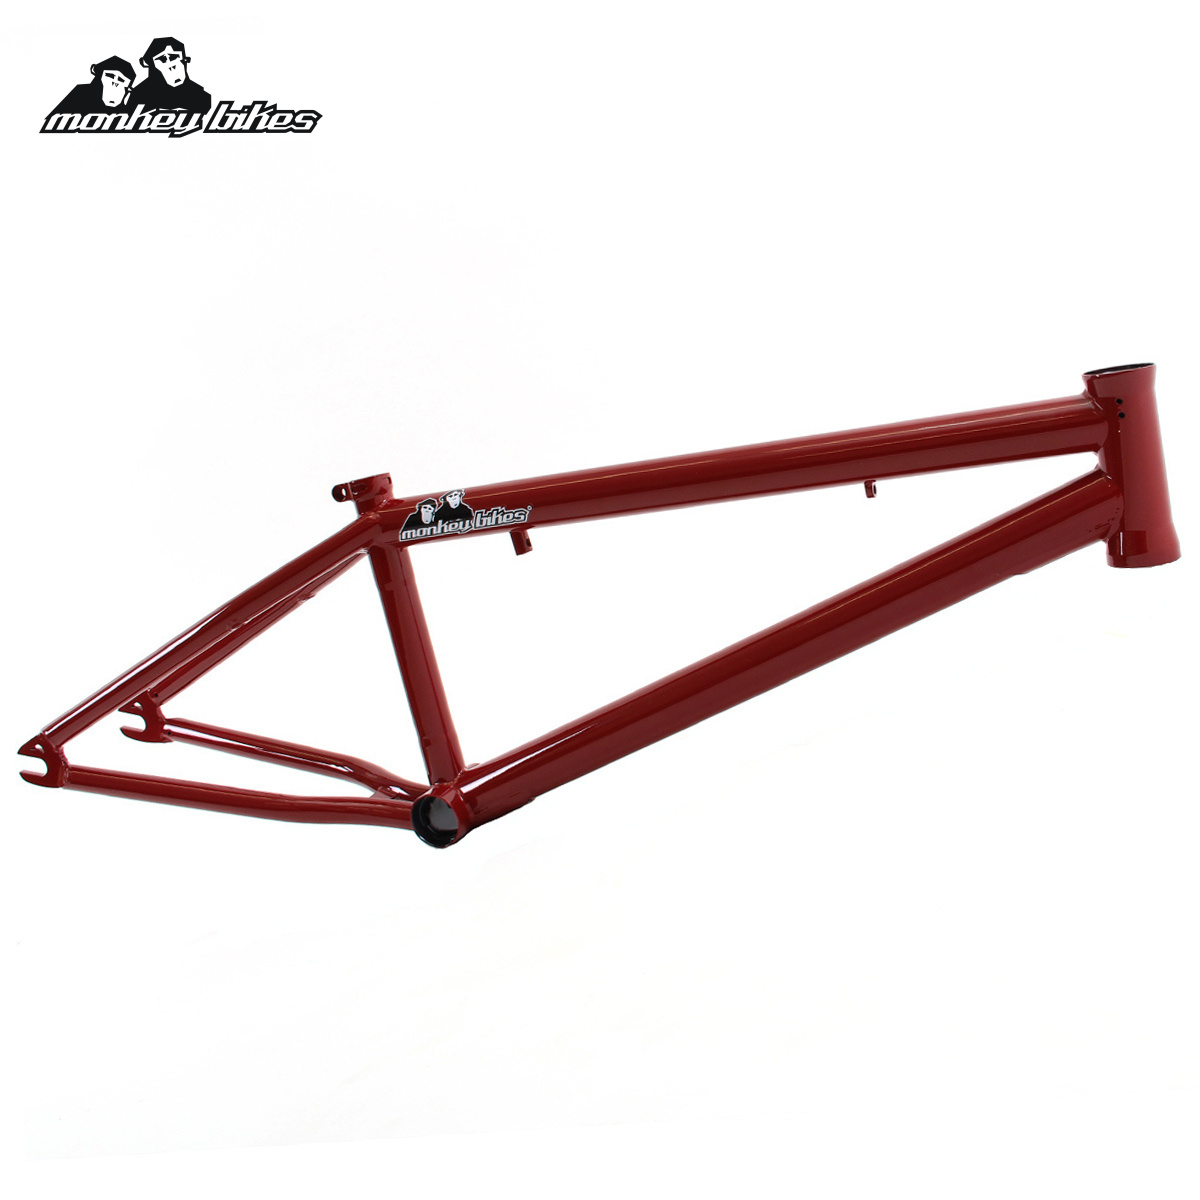 Rám BMX Monkey Bikes Cornelius PRO blood red